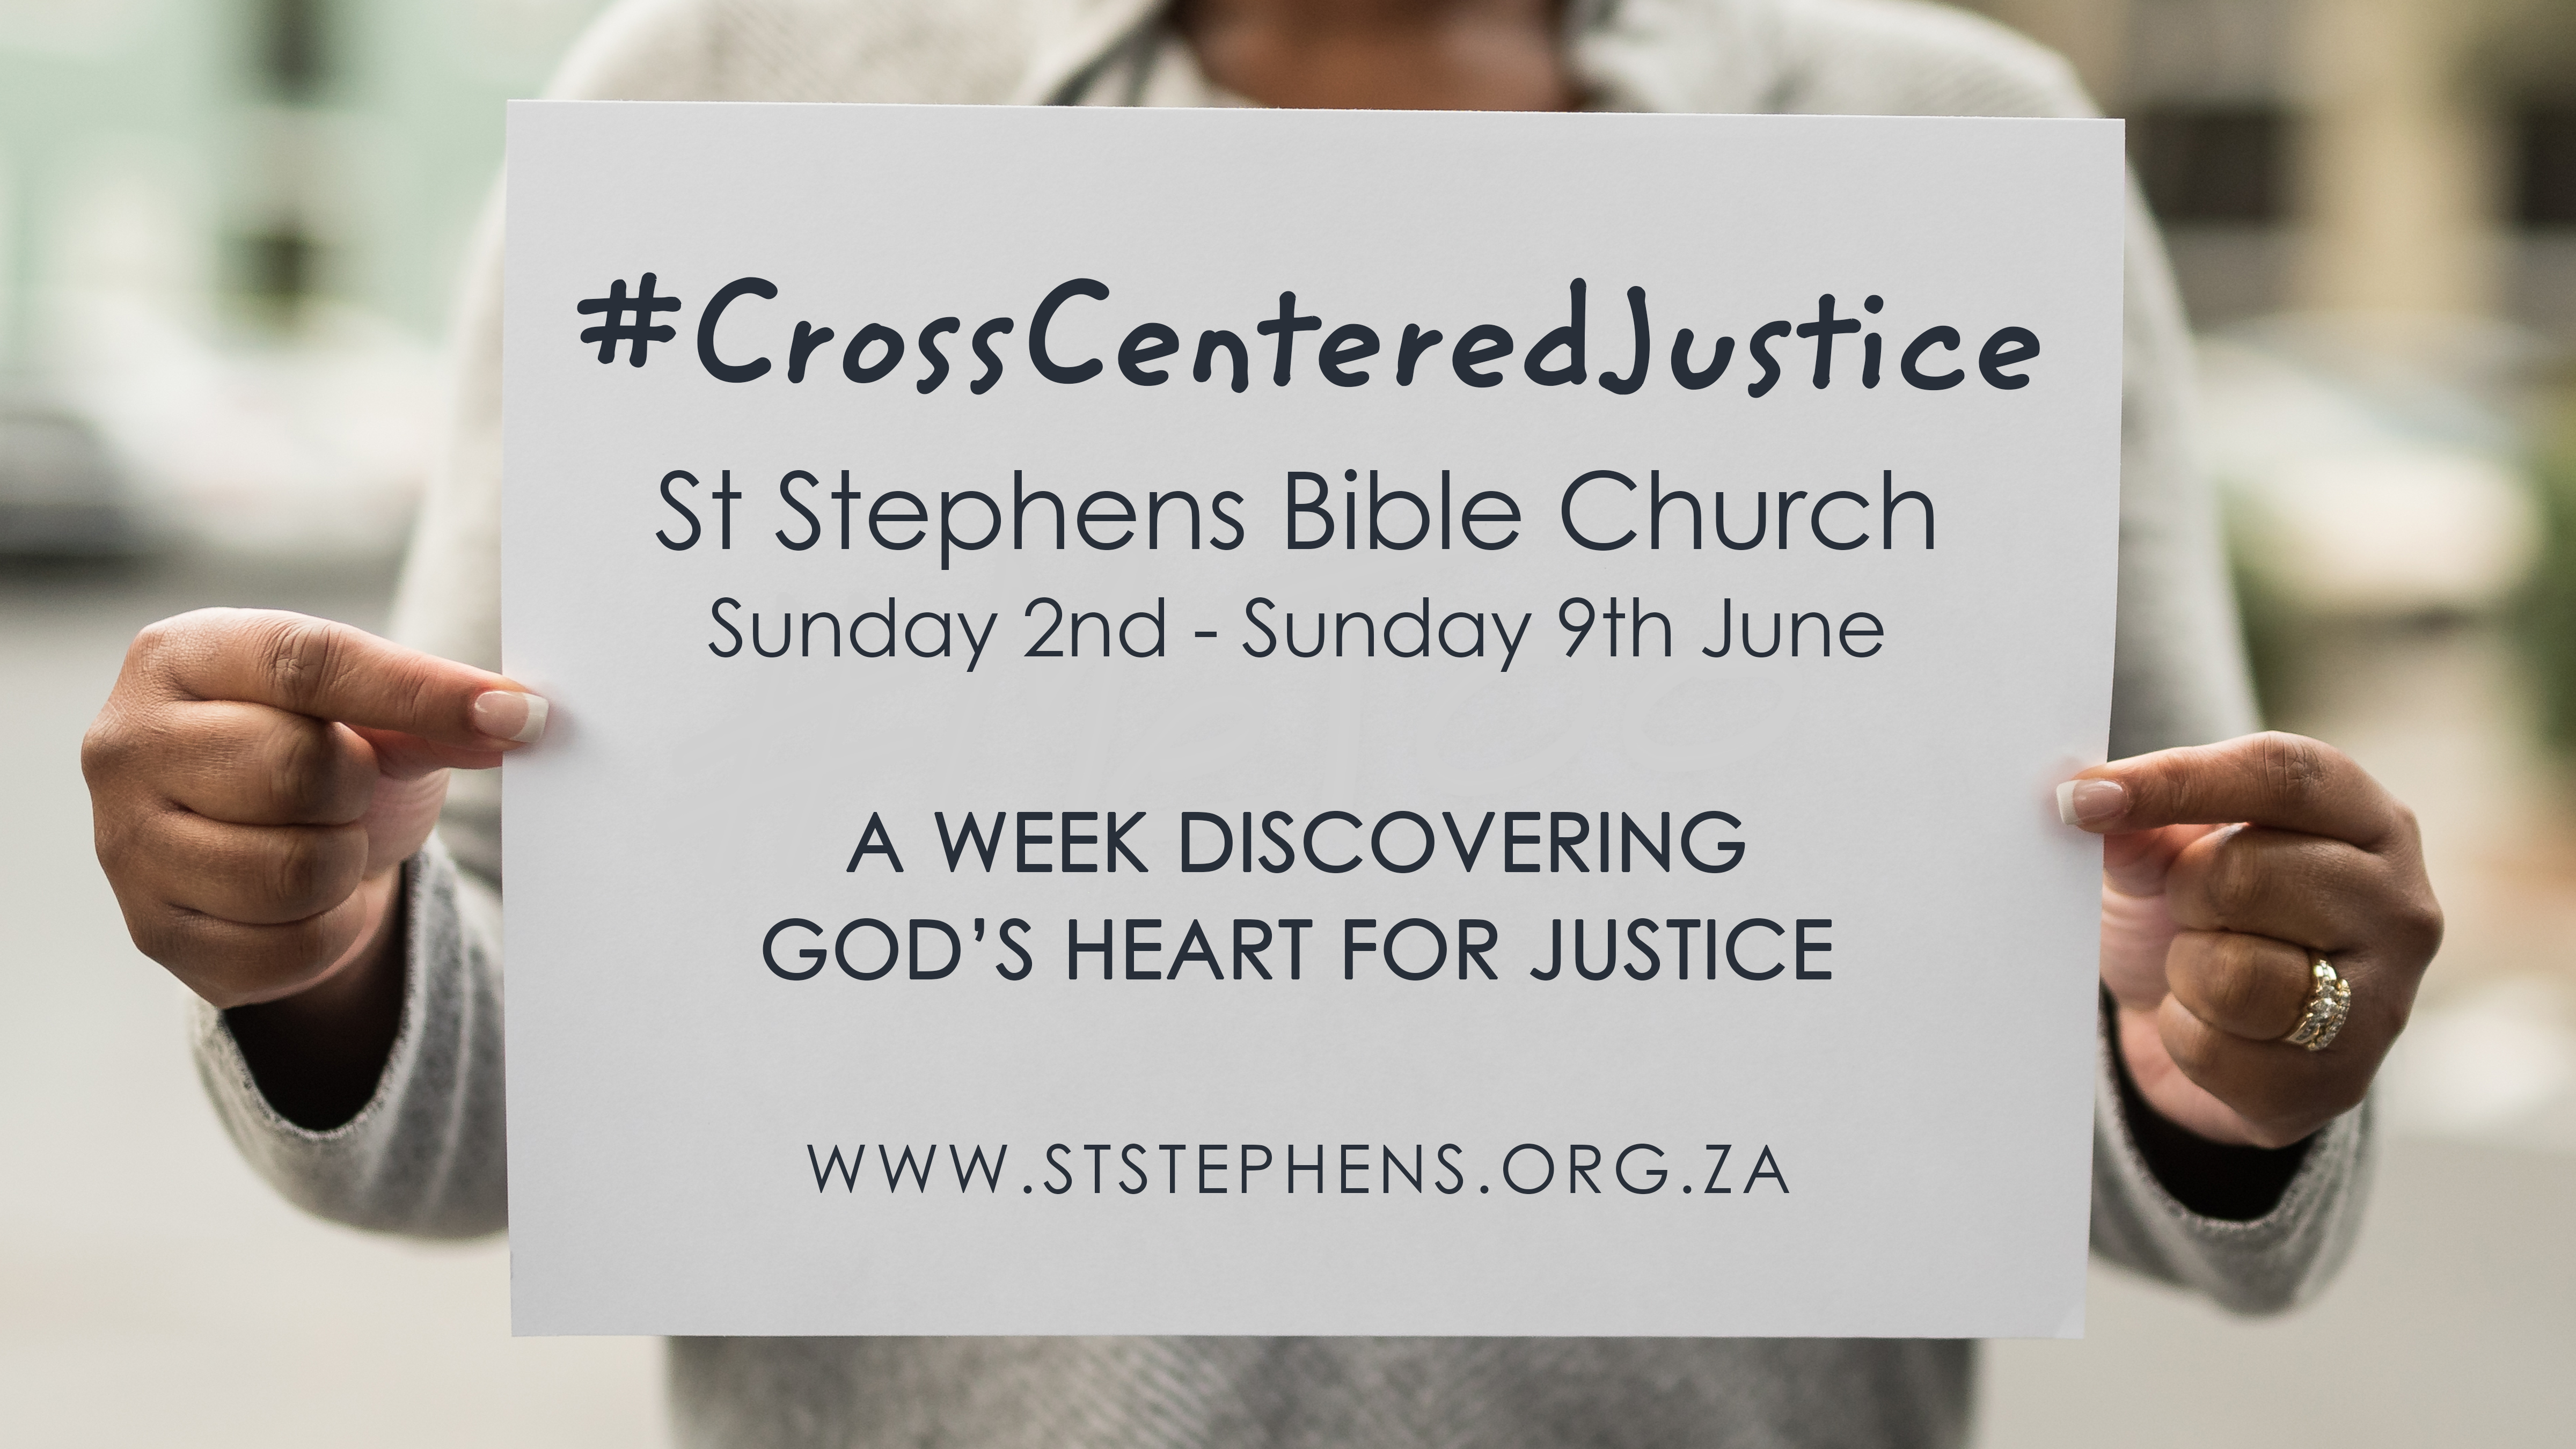 What is Cross-Centered Justice?